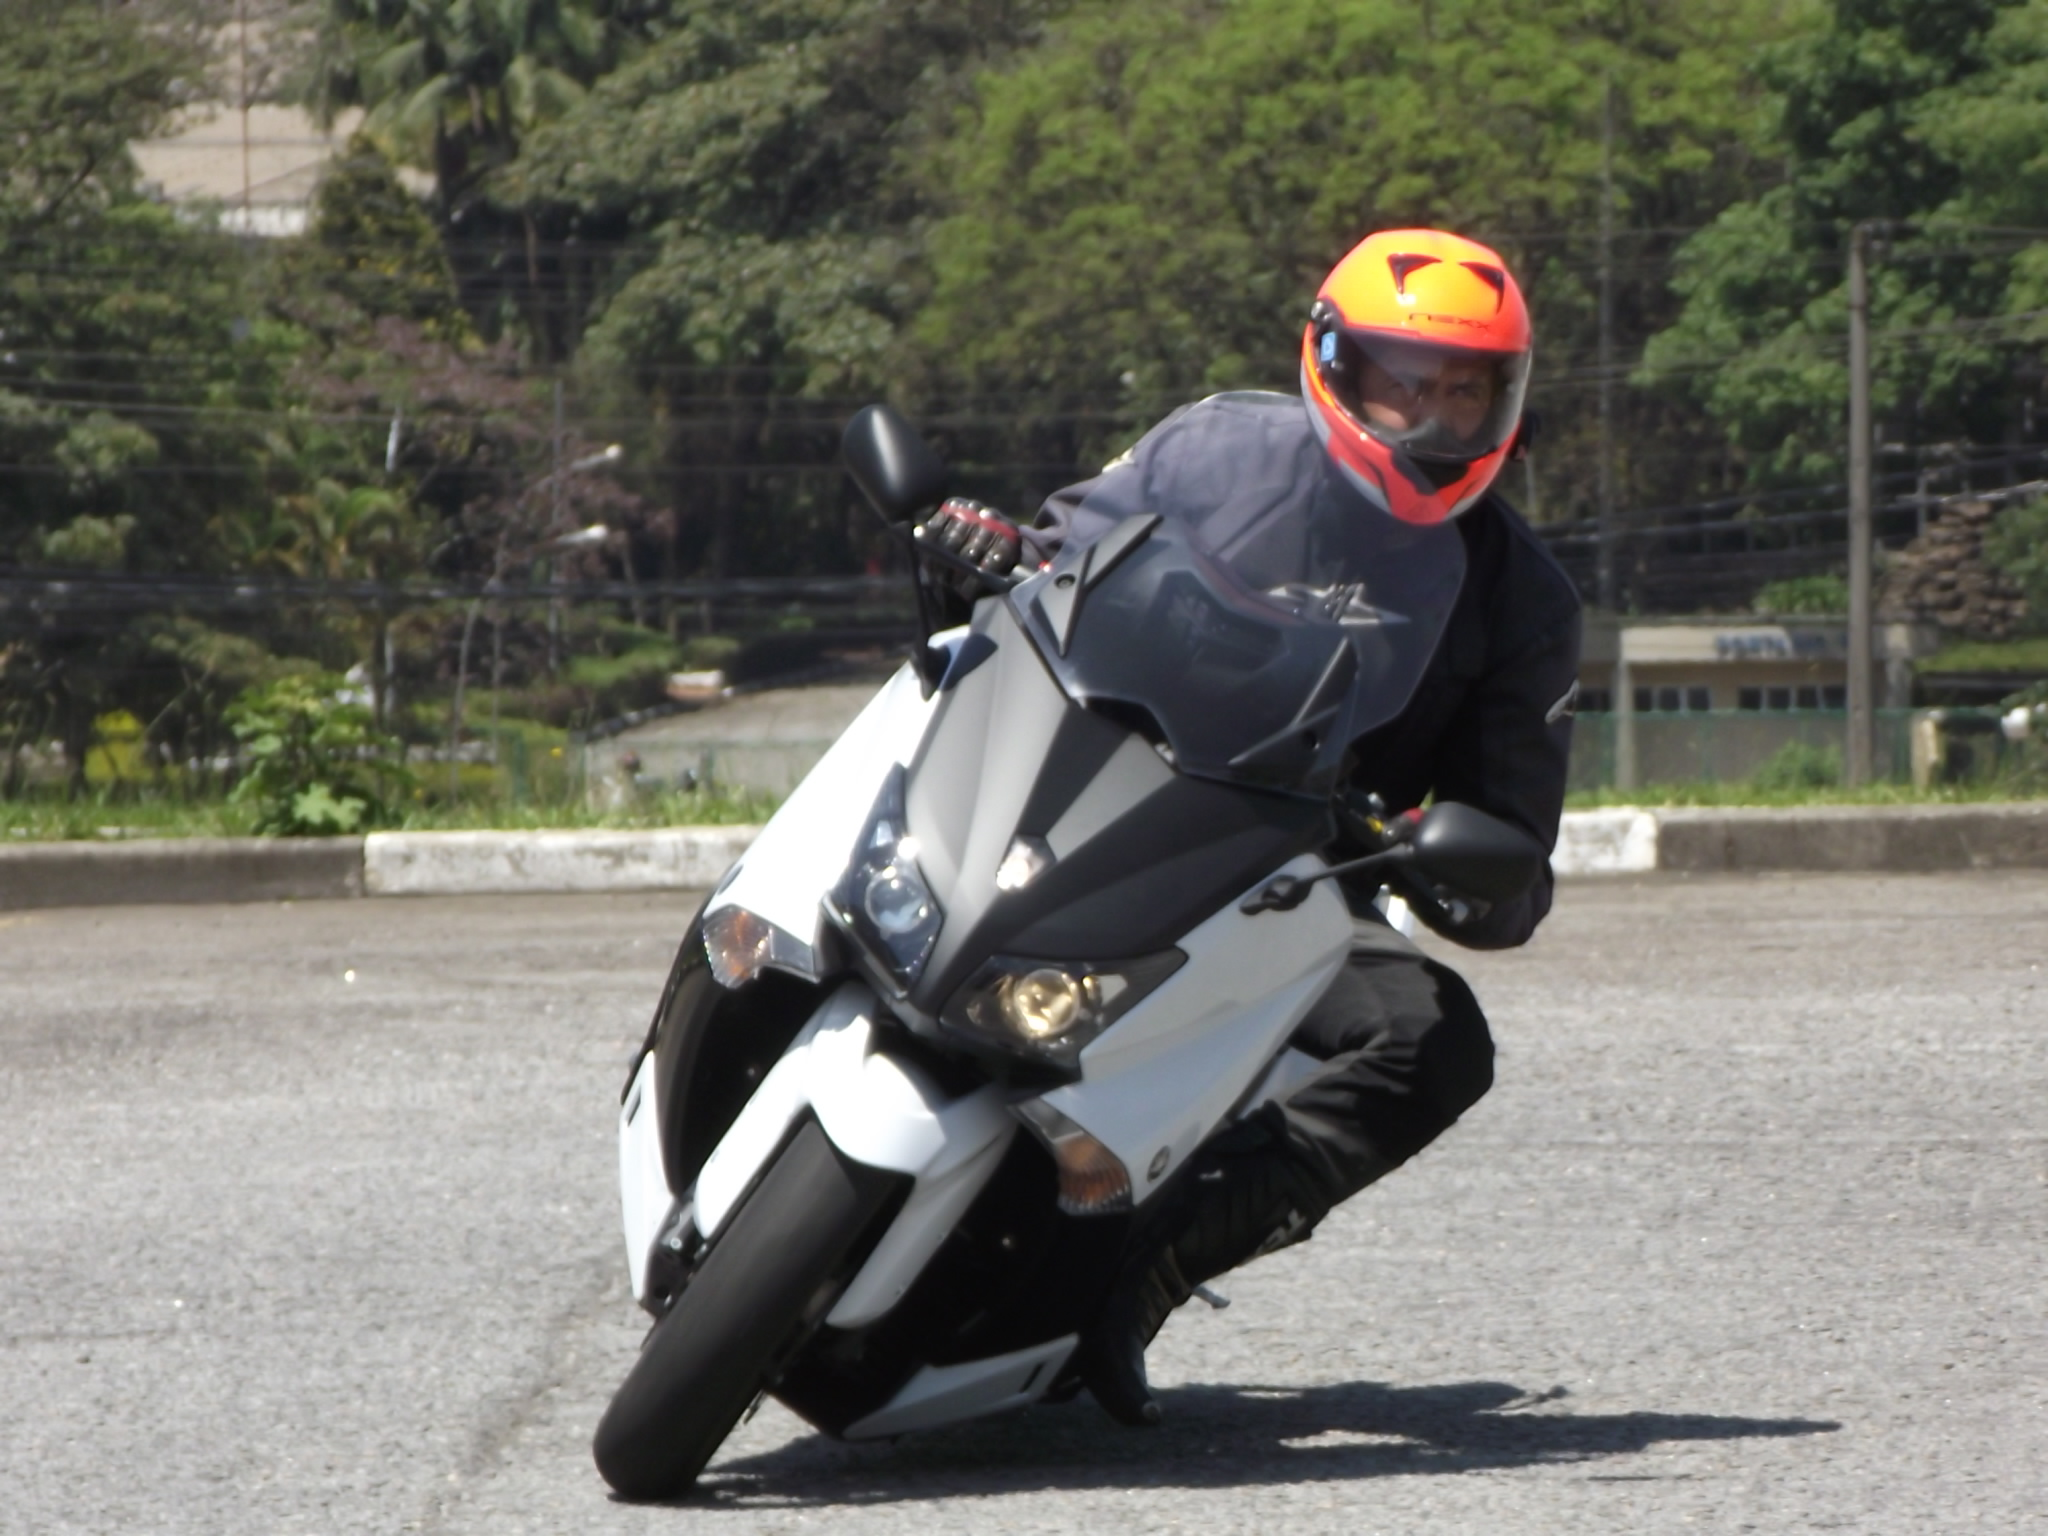 T-Max, um scooter com performance de moto